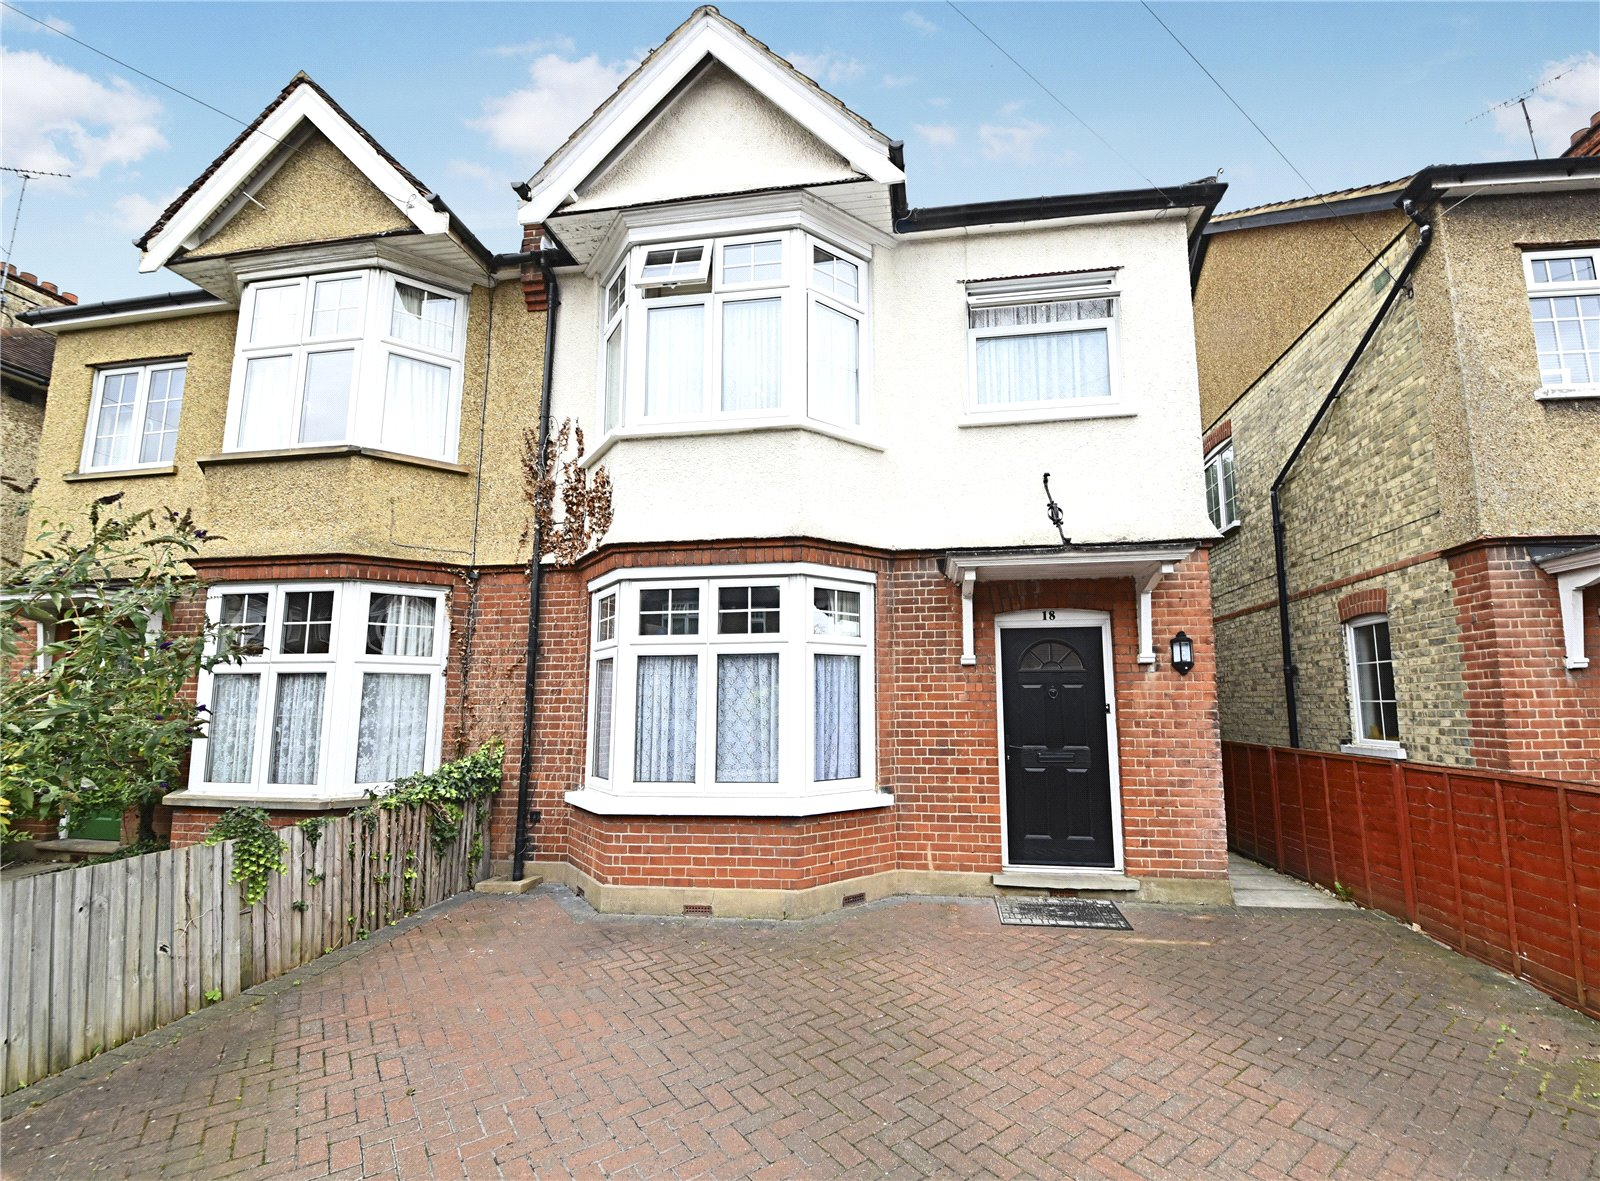 4 bed house for sale in New Barnet, EN5 5HT, EN5